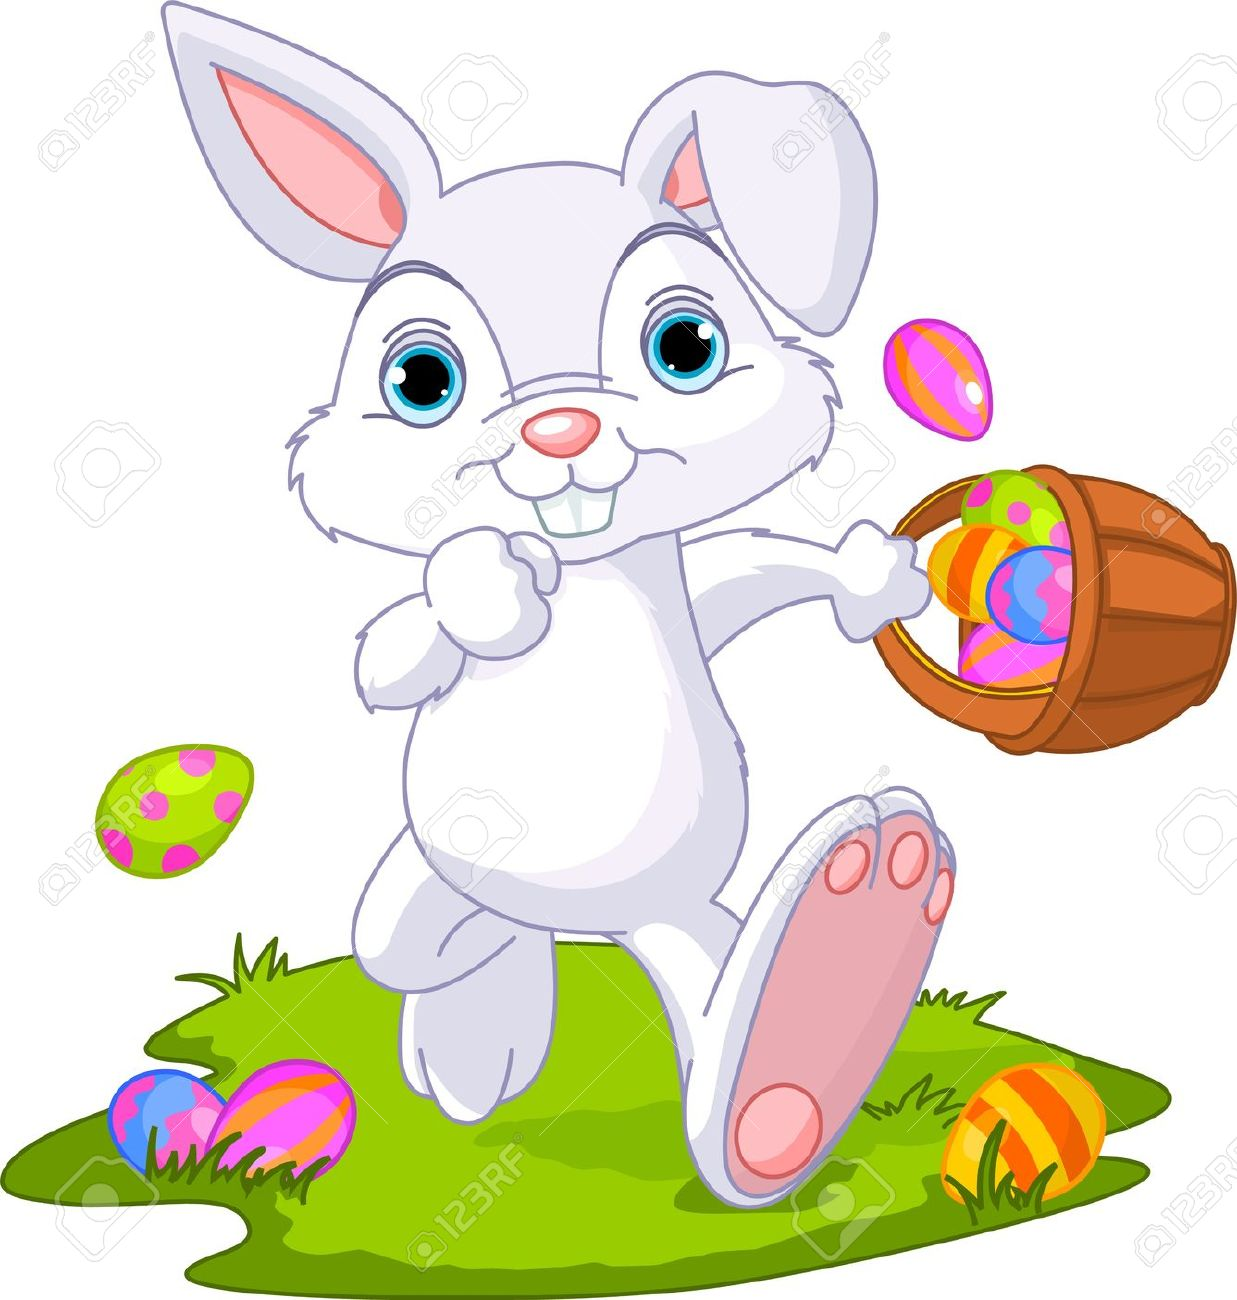 Clipart easter basket bunny graphic Free Easter Bunny Clipart & Easter Bunny Clip Art Images ... graphic